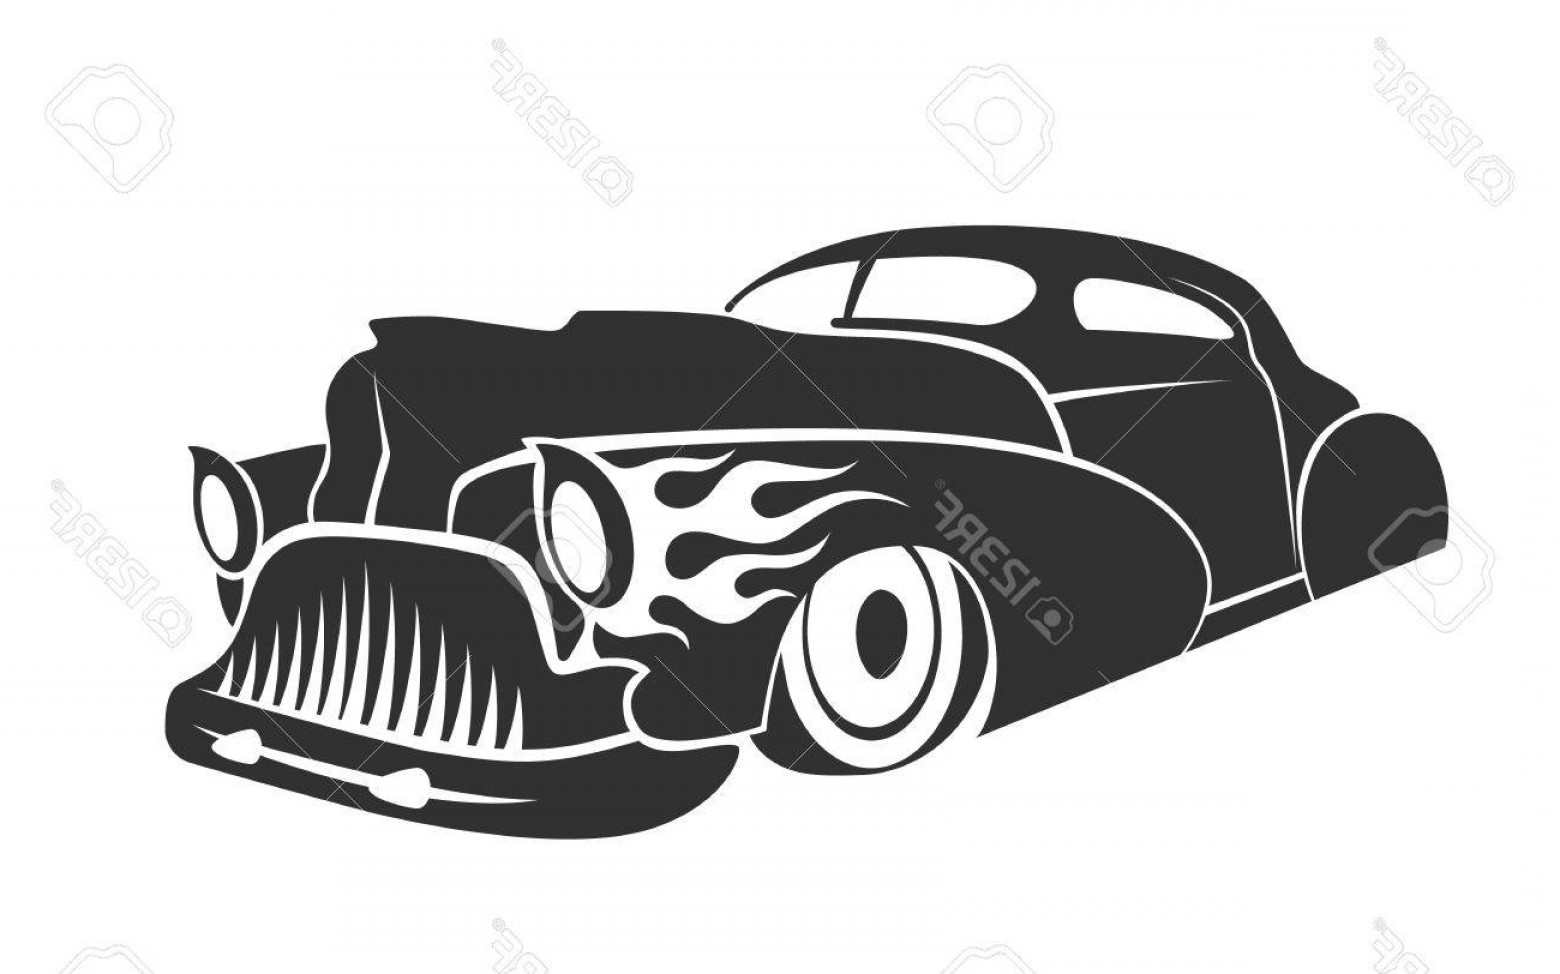 Old School Car Vector: Photostock Vector Old Custom Car Silhouette Hot Rod Low Rider Coupe Isolated Vector Illustration